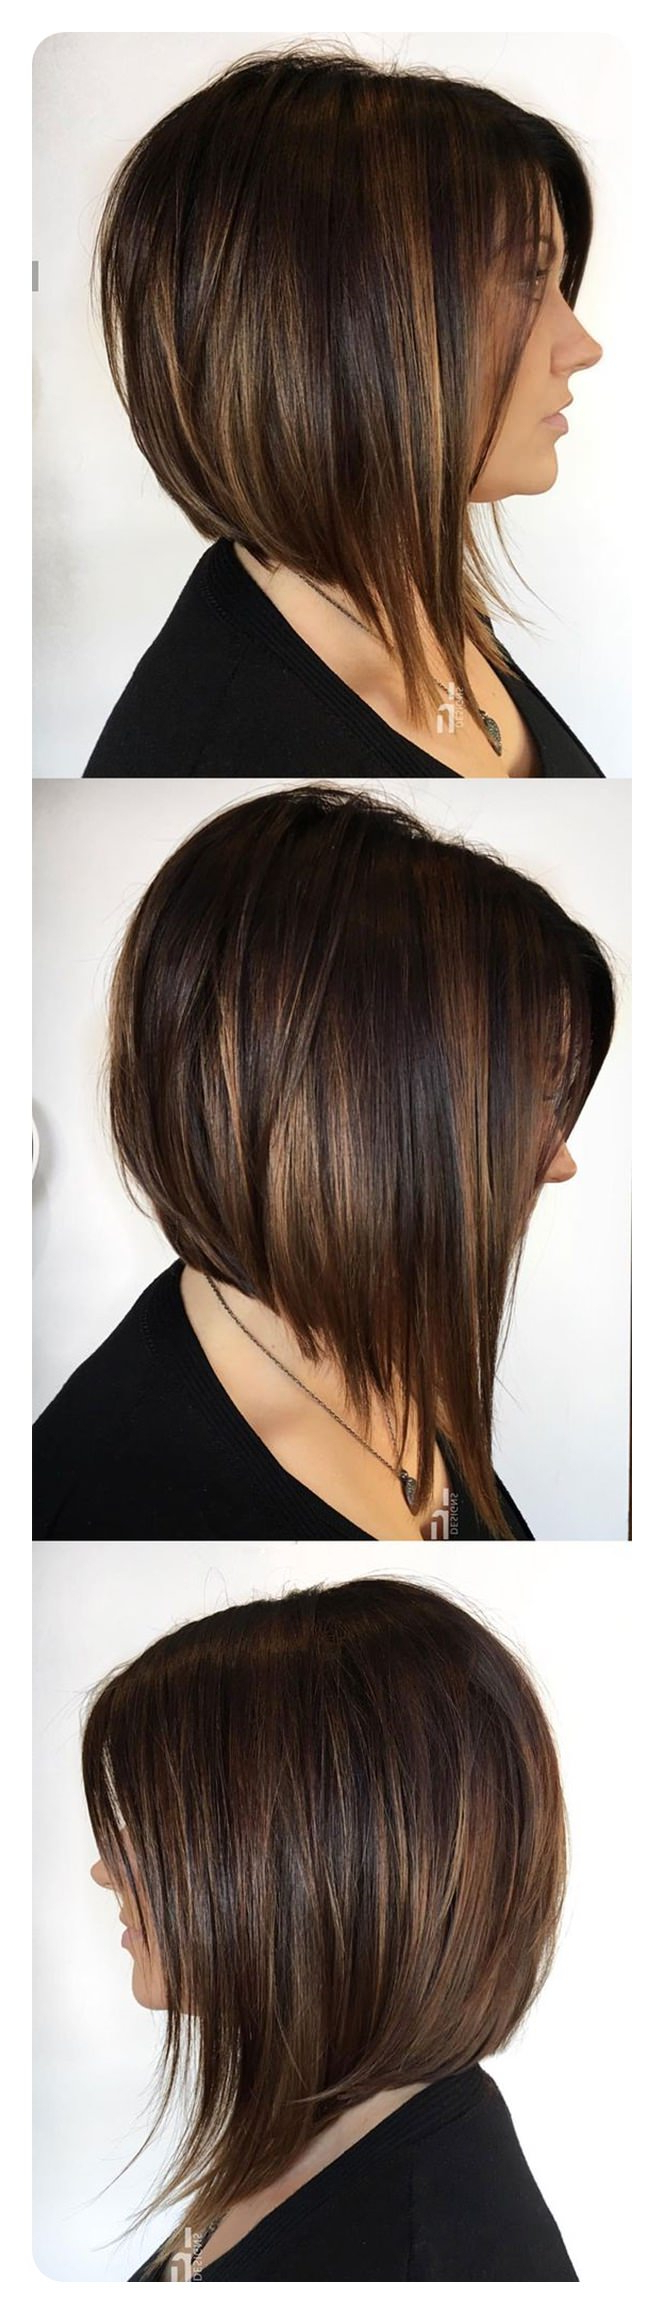 Best And Newest Sharp Shaggy Bob Hairstyles With Side Part Regarding 92 Layered Inverted Bob Hairstyles That You Should Try – Style Easily (View 5 of 20)